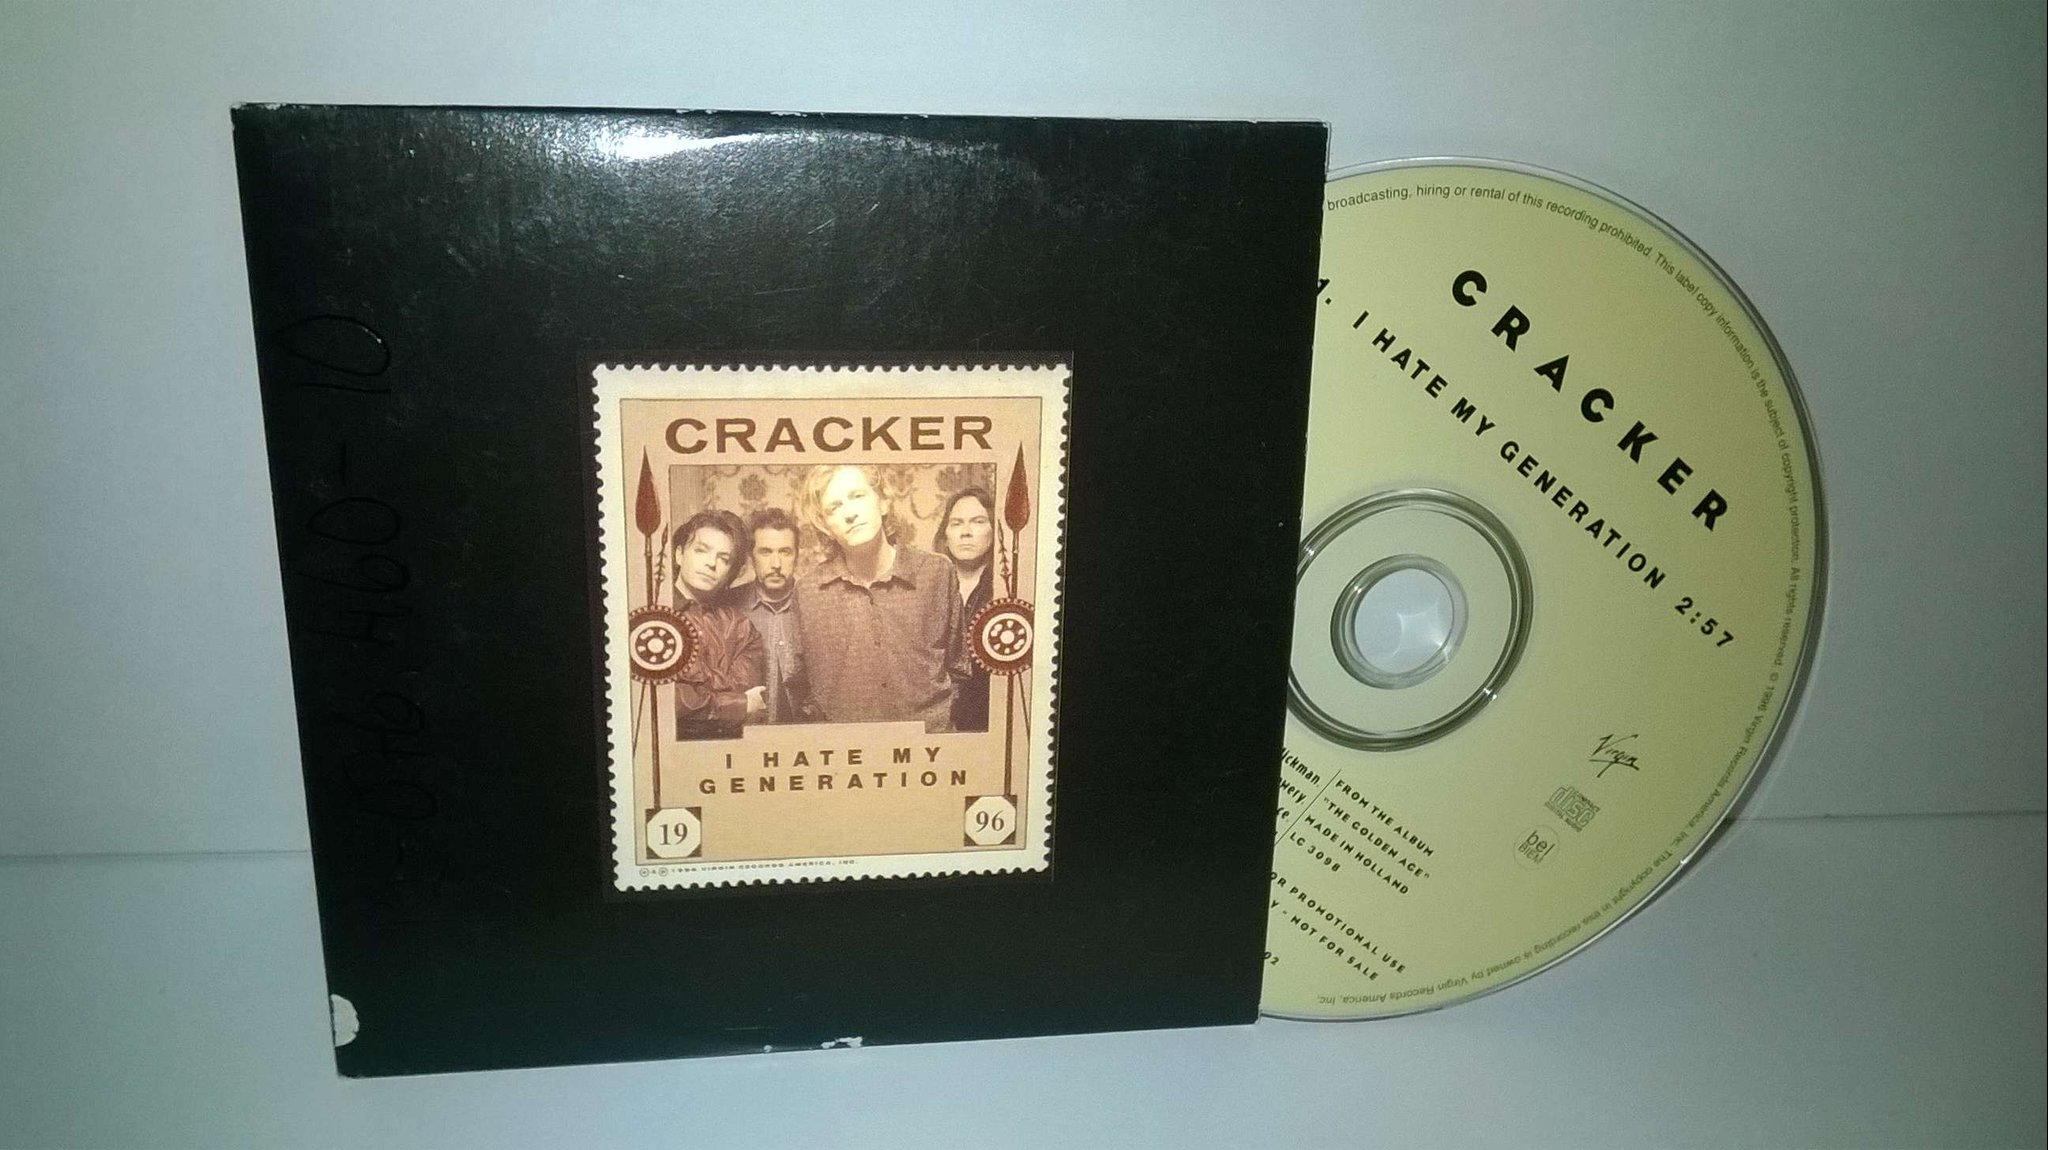 Cracker - I Hate My Generation, single CD